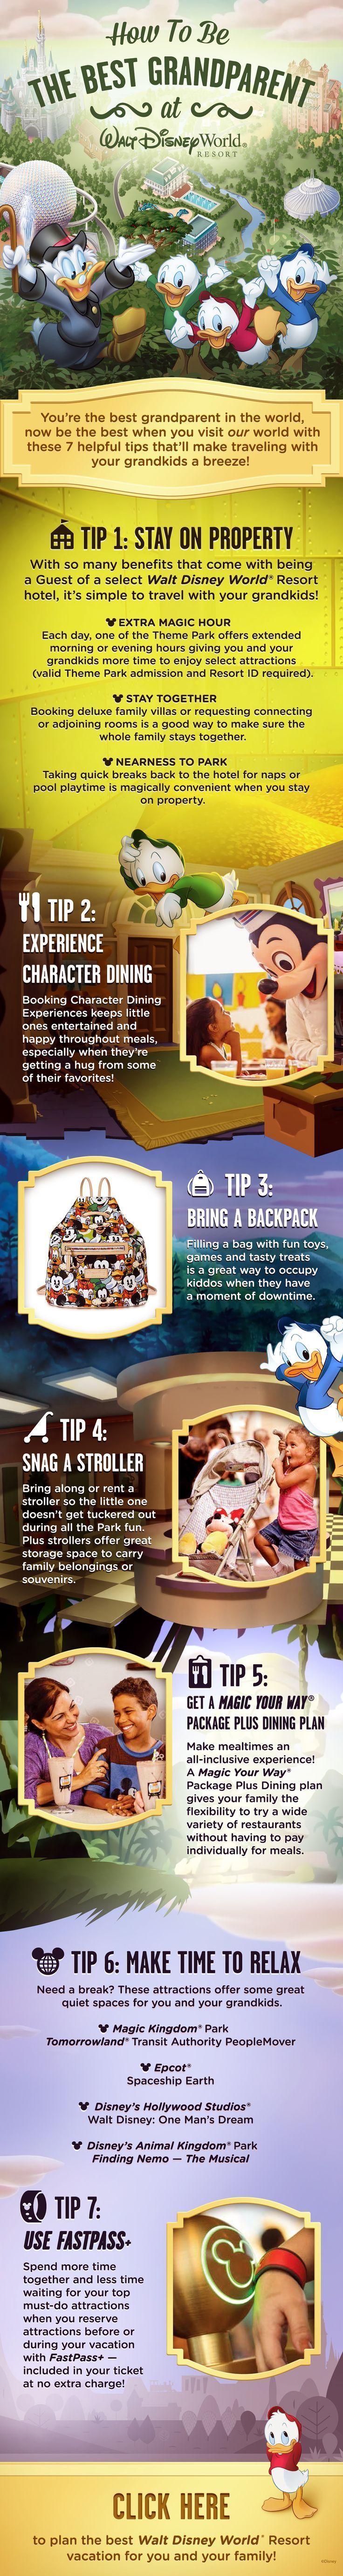 Traveling with your Grandkids on a Walt Disney World vacation? Here's a few tips on how to get the most out of your family trip, from Walt Disney World Resort Hotel stays to FastPass Plus reservations! | Disney Tips and Tricks | Disney Tips | Disney World Tips | Disney World Tips & Tricks | Disney World Planning | Disney World Planning Tips | Disney Travel Ideas | Disney Travel Tips |